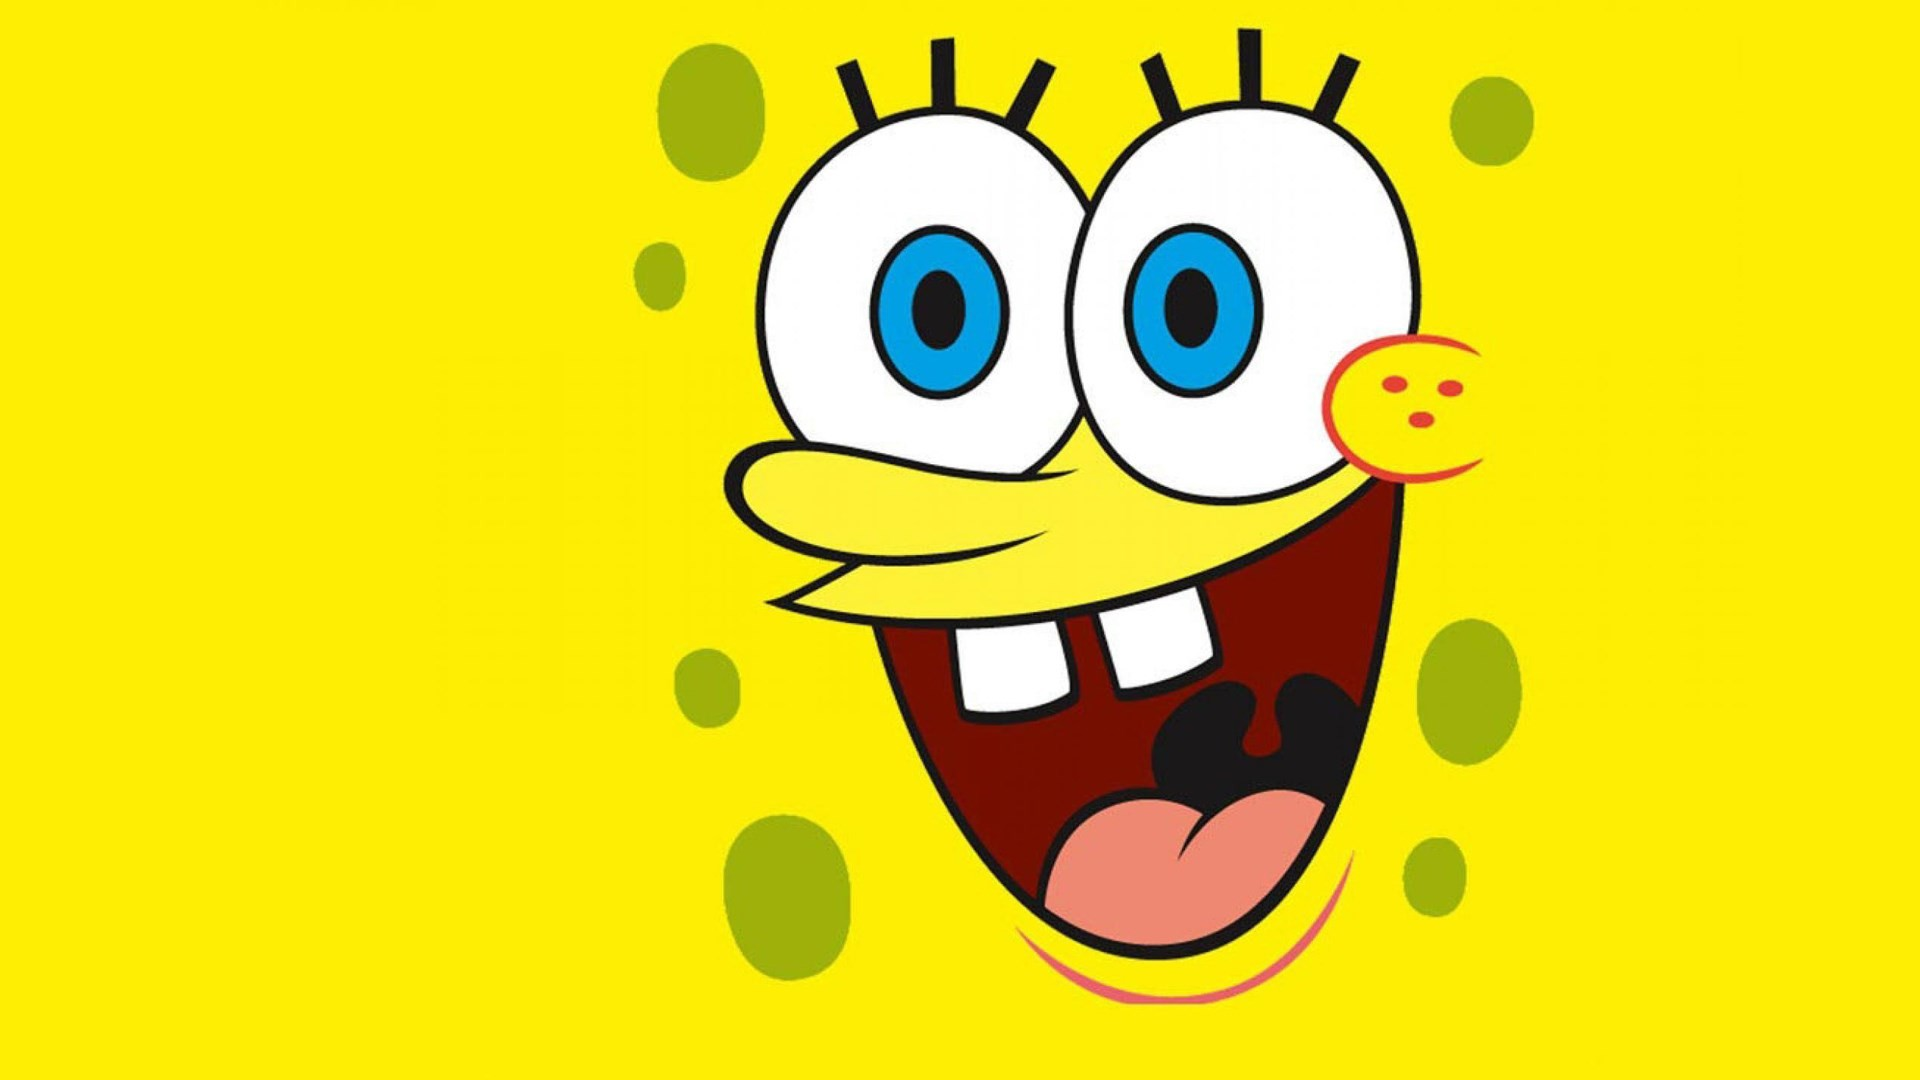 1920x1080 spongebob backgrounds for widescreen, 1920 x 1080 (86 kB) | ololoshka |  Pinterest | Spongebob